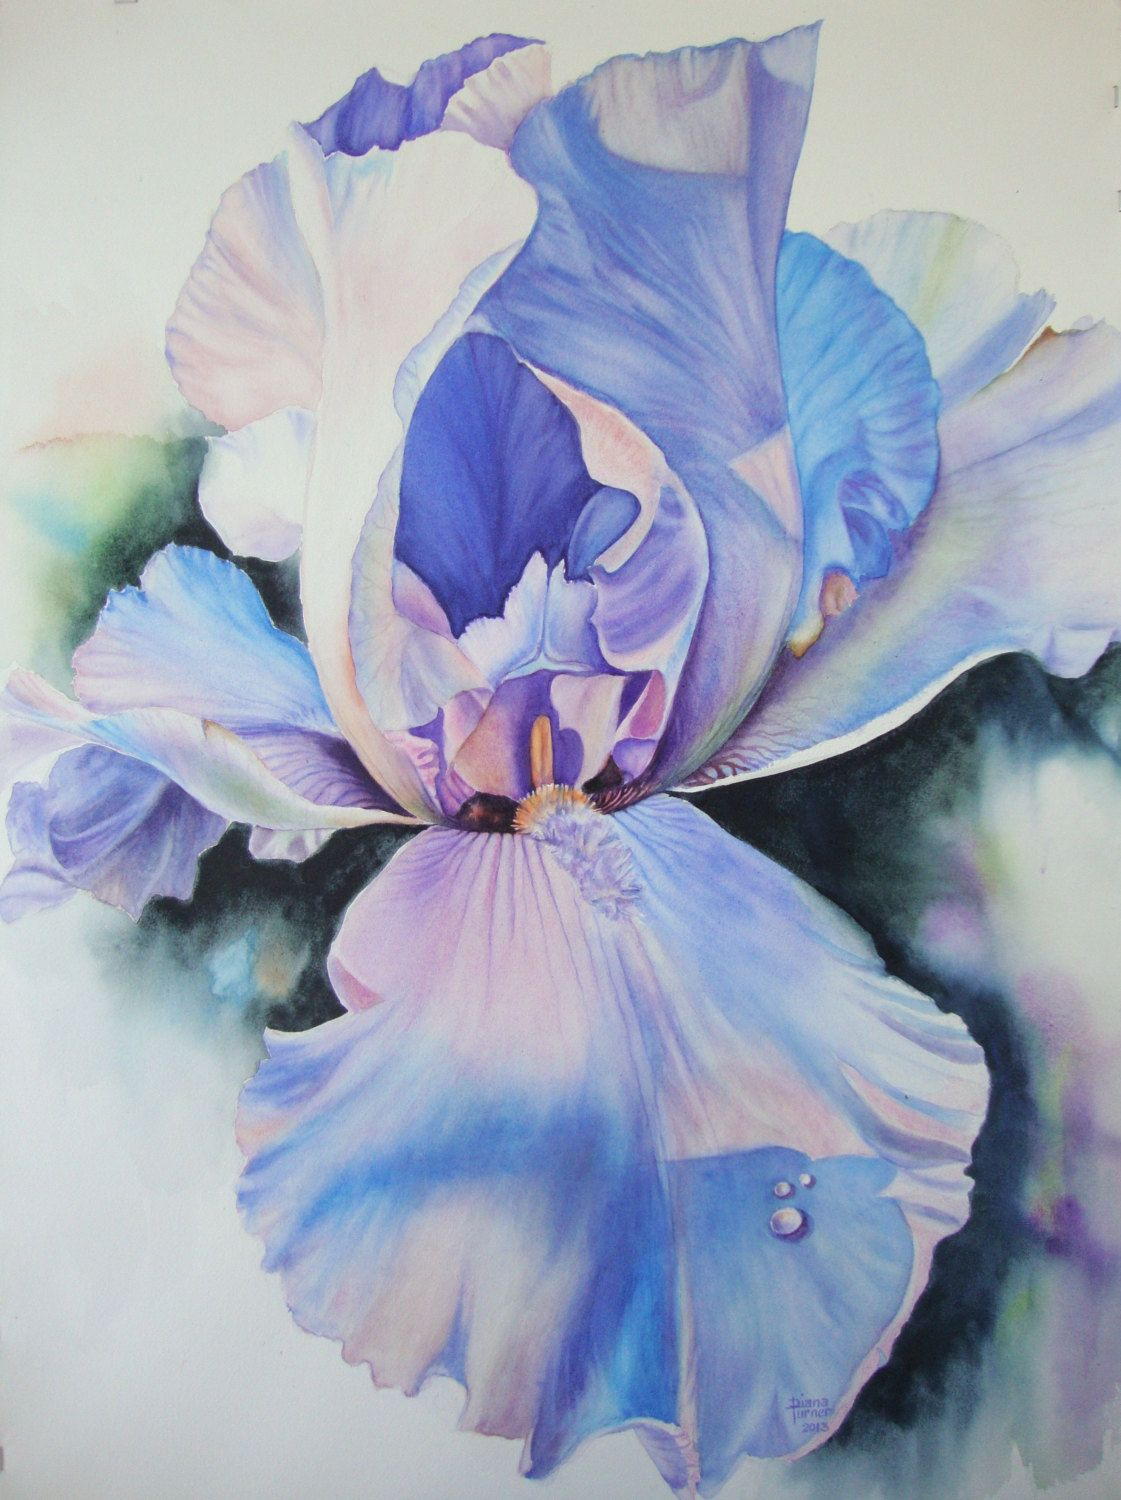 Watercolor Painting Original Watercolor Painting Flower, Painting Art Iris by Diana M Turner, 11 x 14 by Dianamturnerart on Etsy https://www.etsy.com/listing/198327778/watercolor-painting-original-watercolor